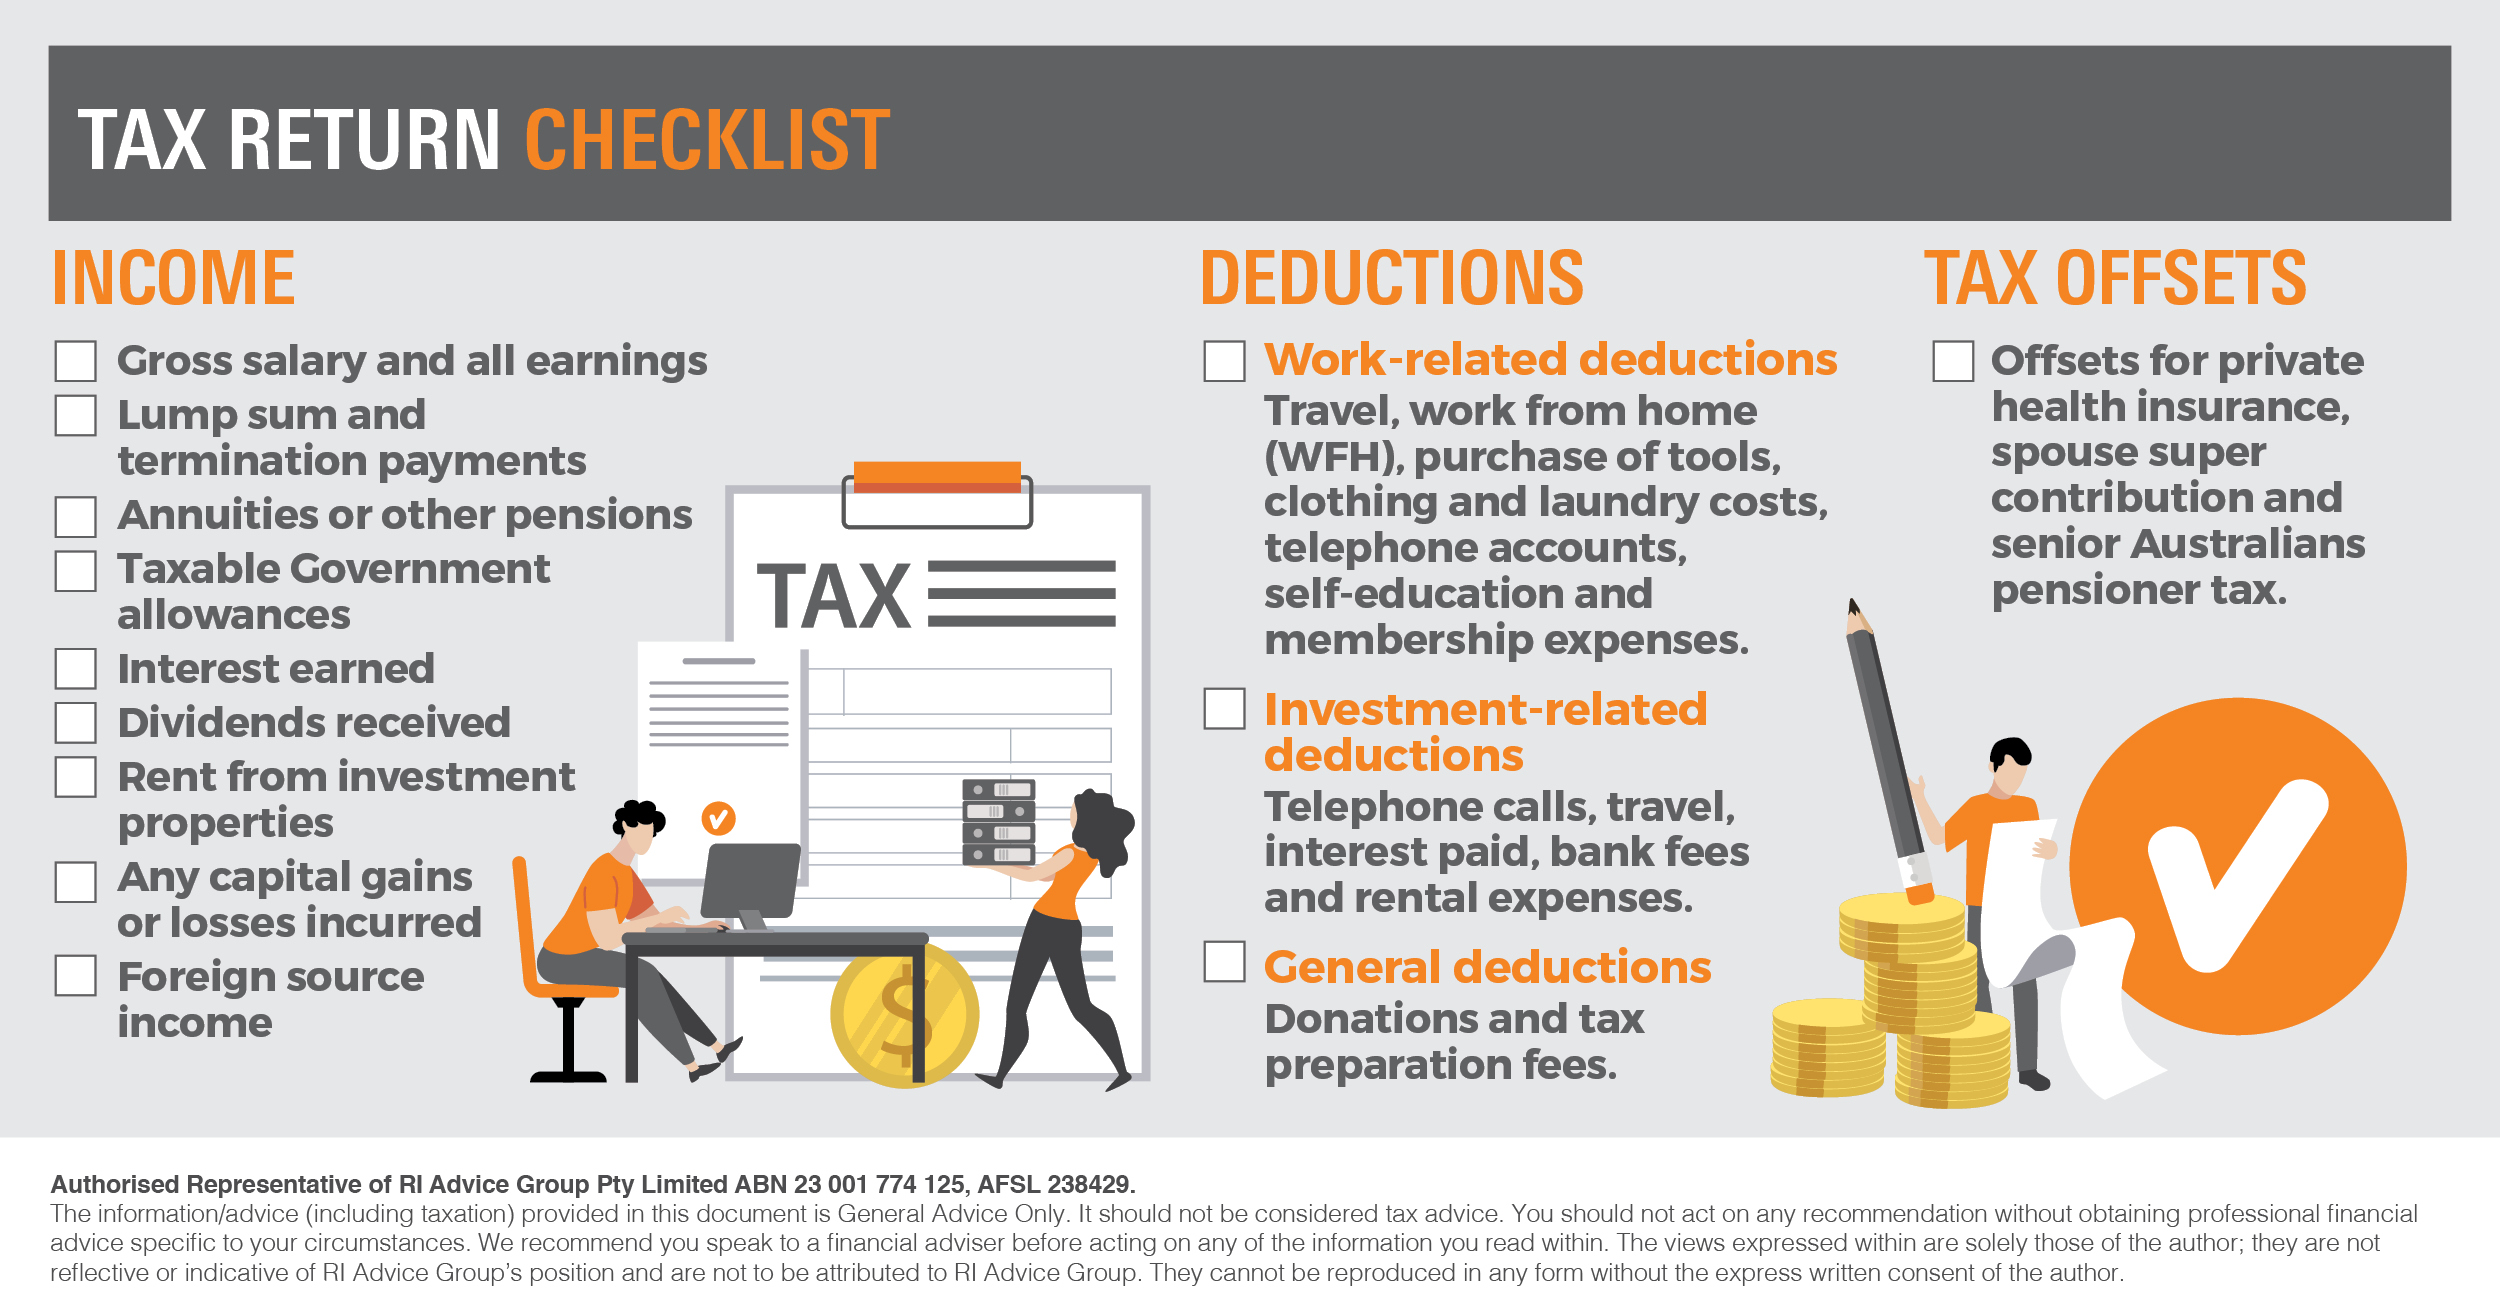 Infographic_Tax return checklist_RI